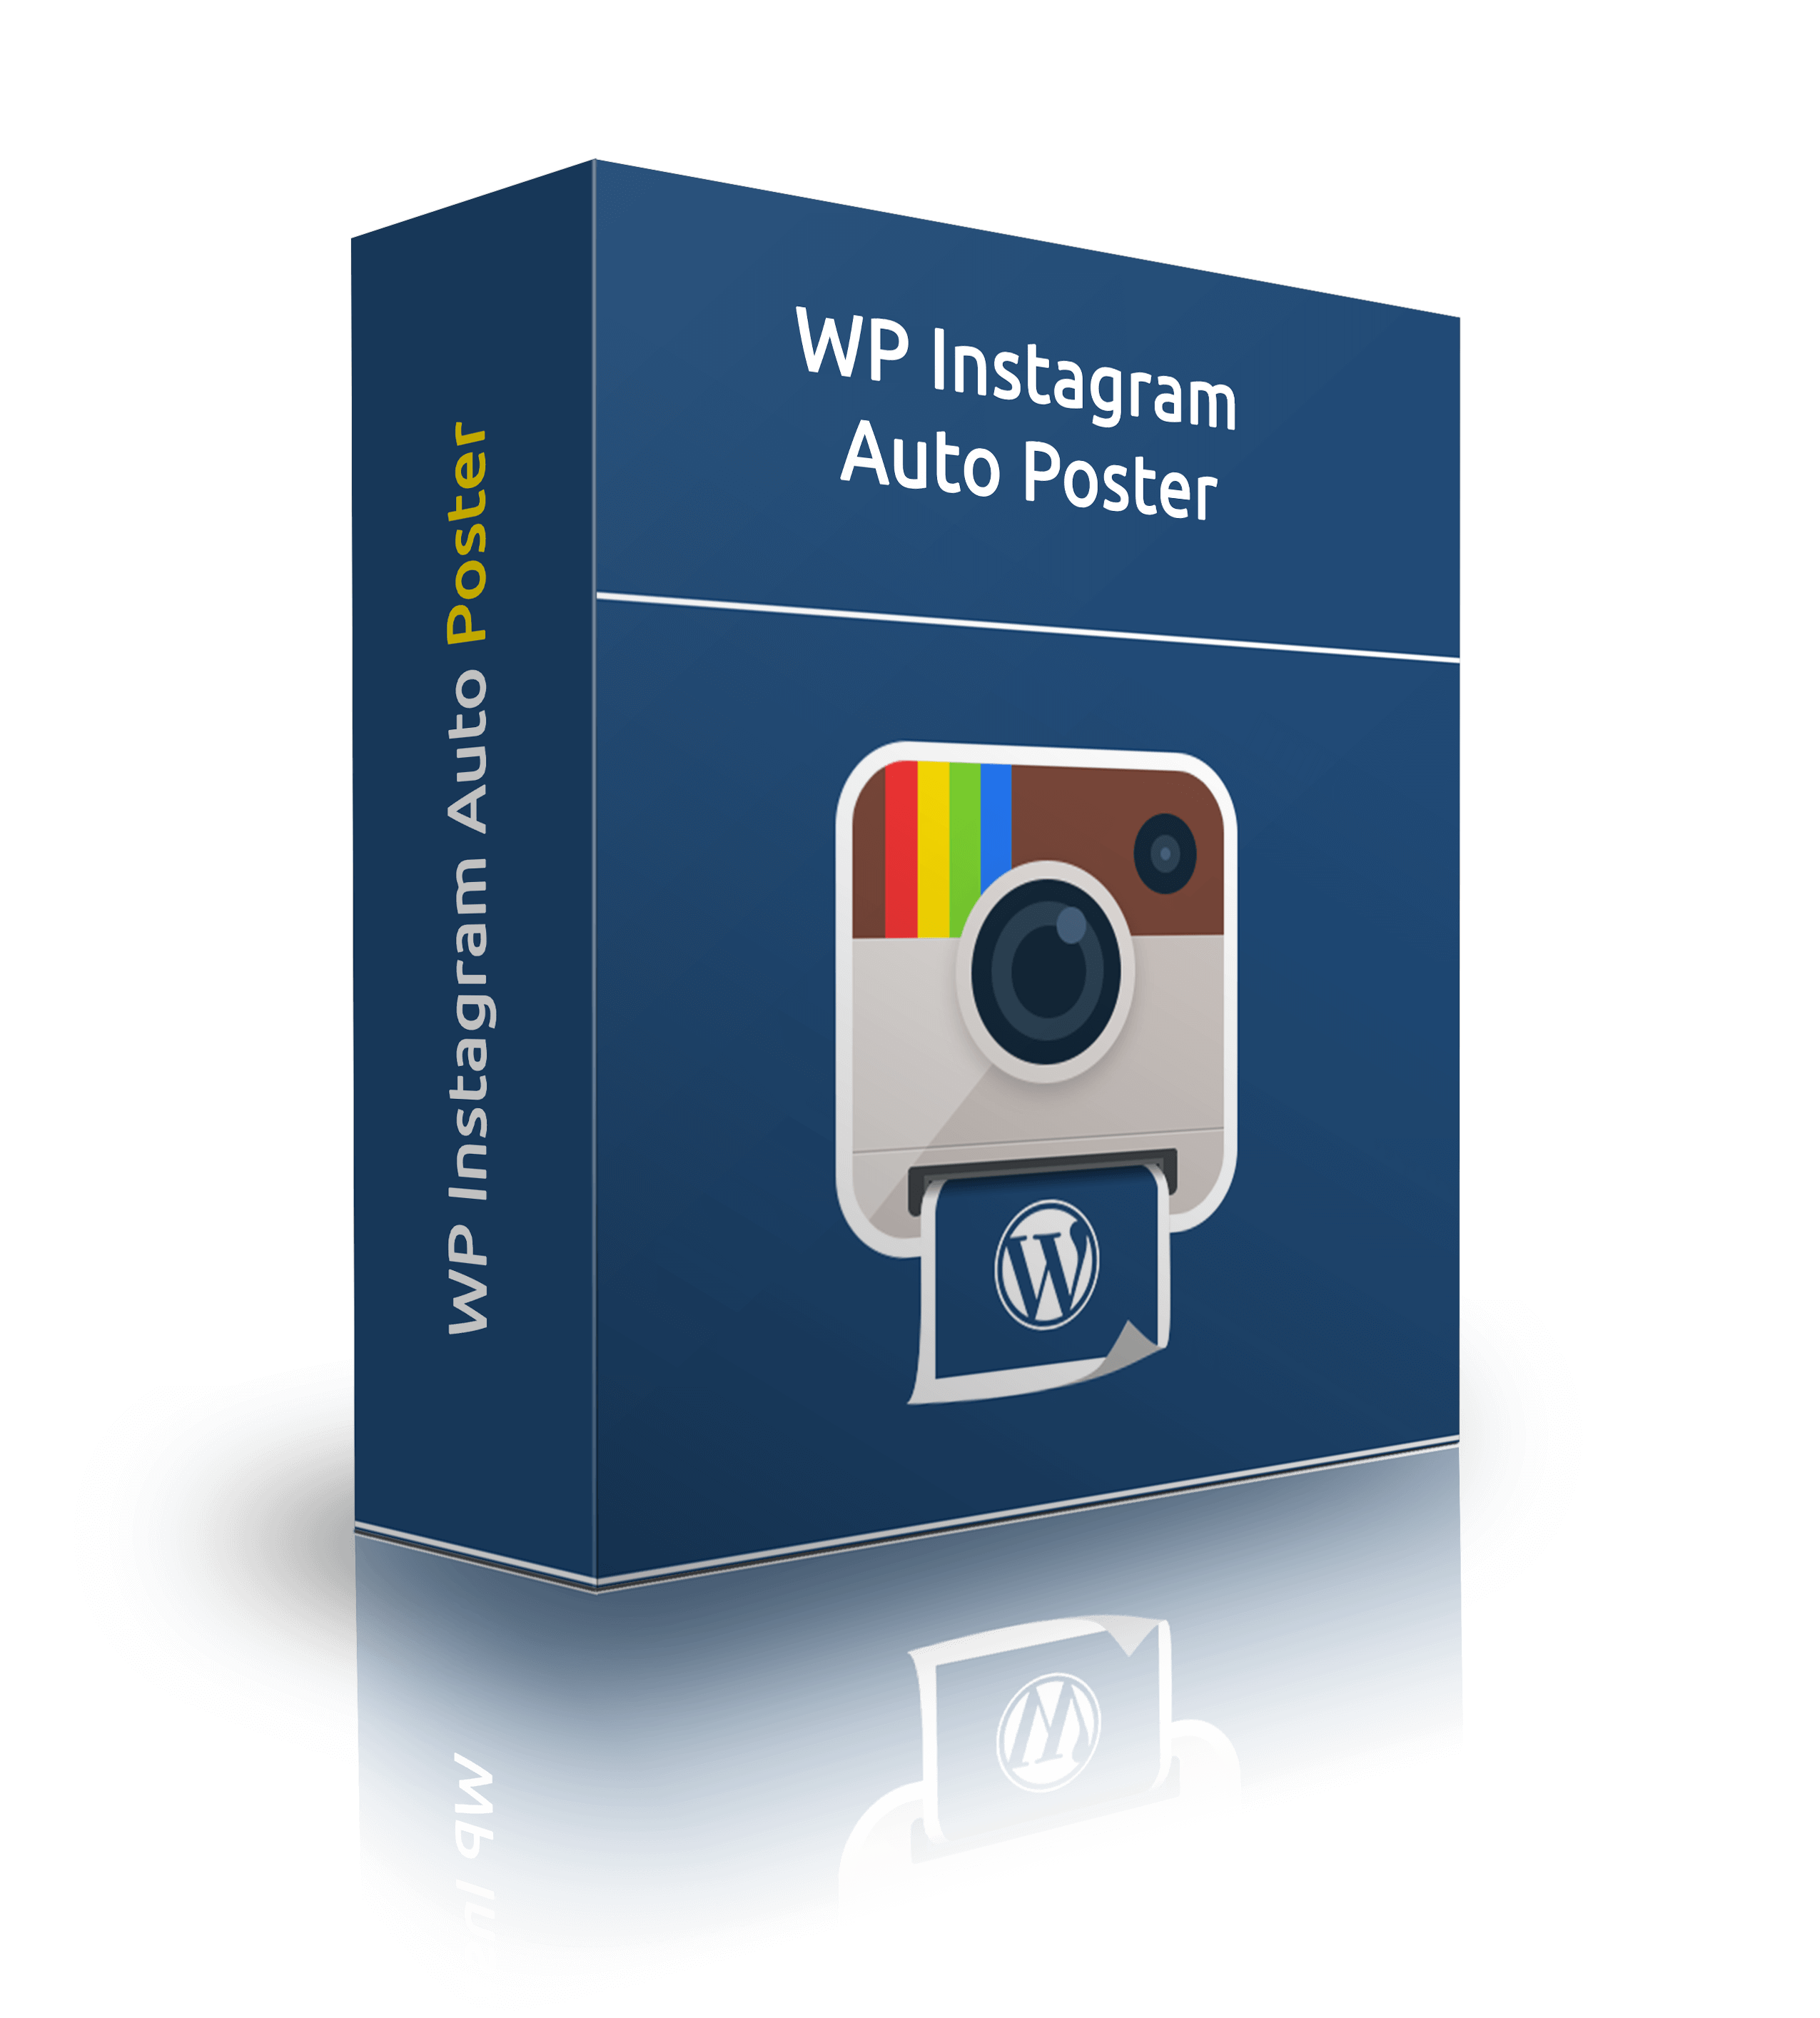 WP Instagram Auto